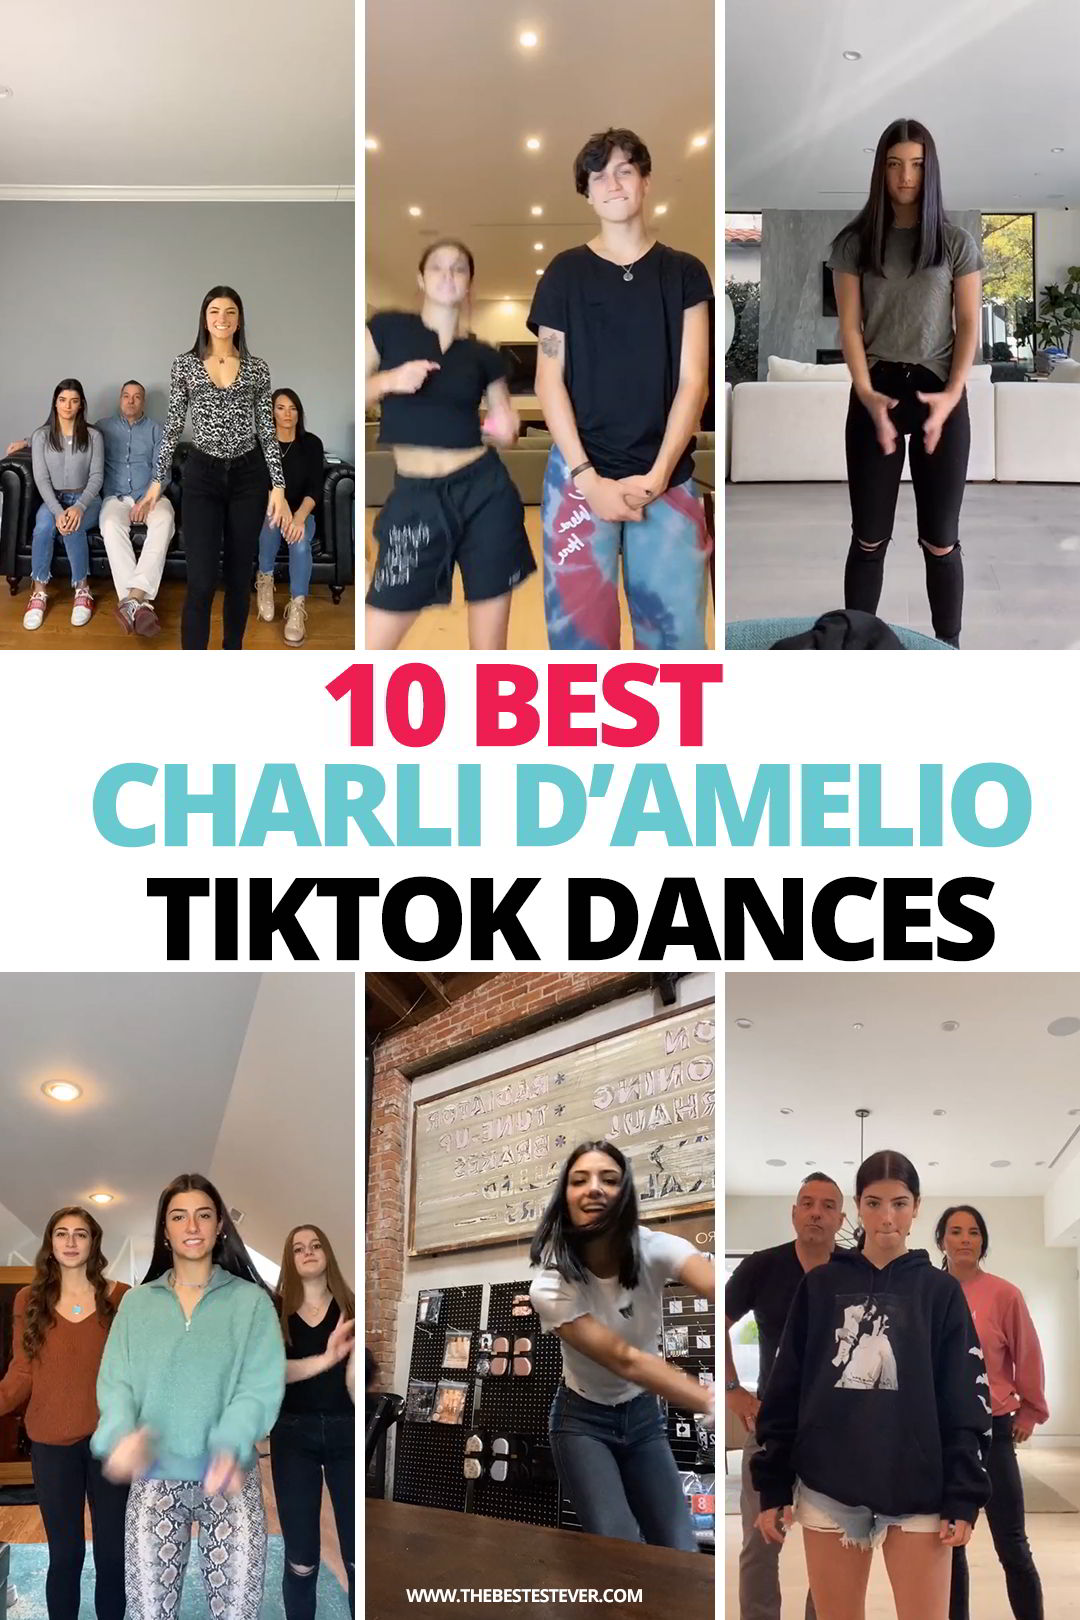 10 Best Charli D'Amelio TikTok Dance Videos of All Time